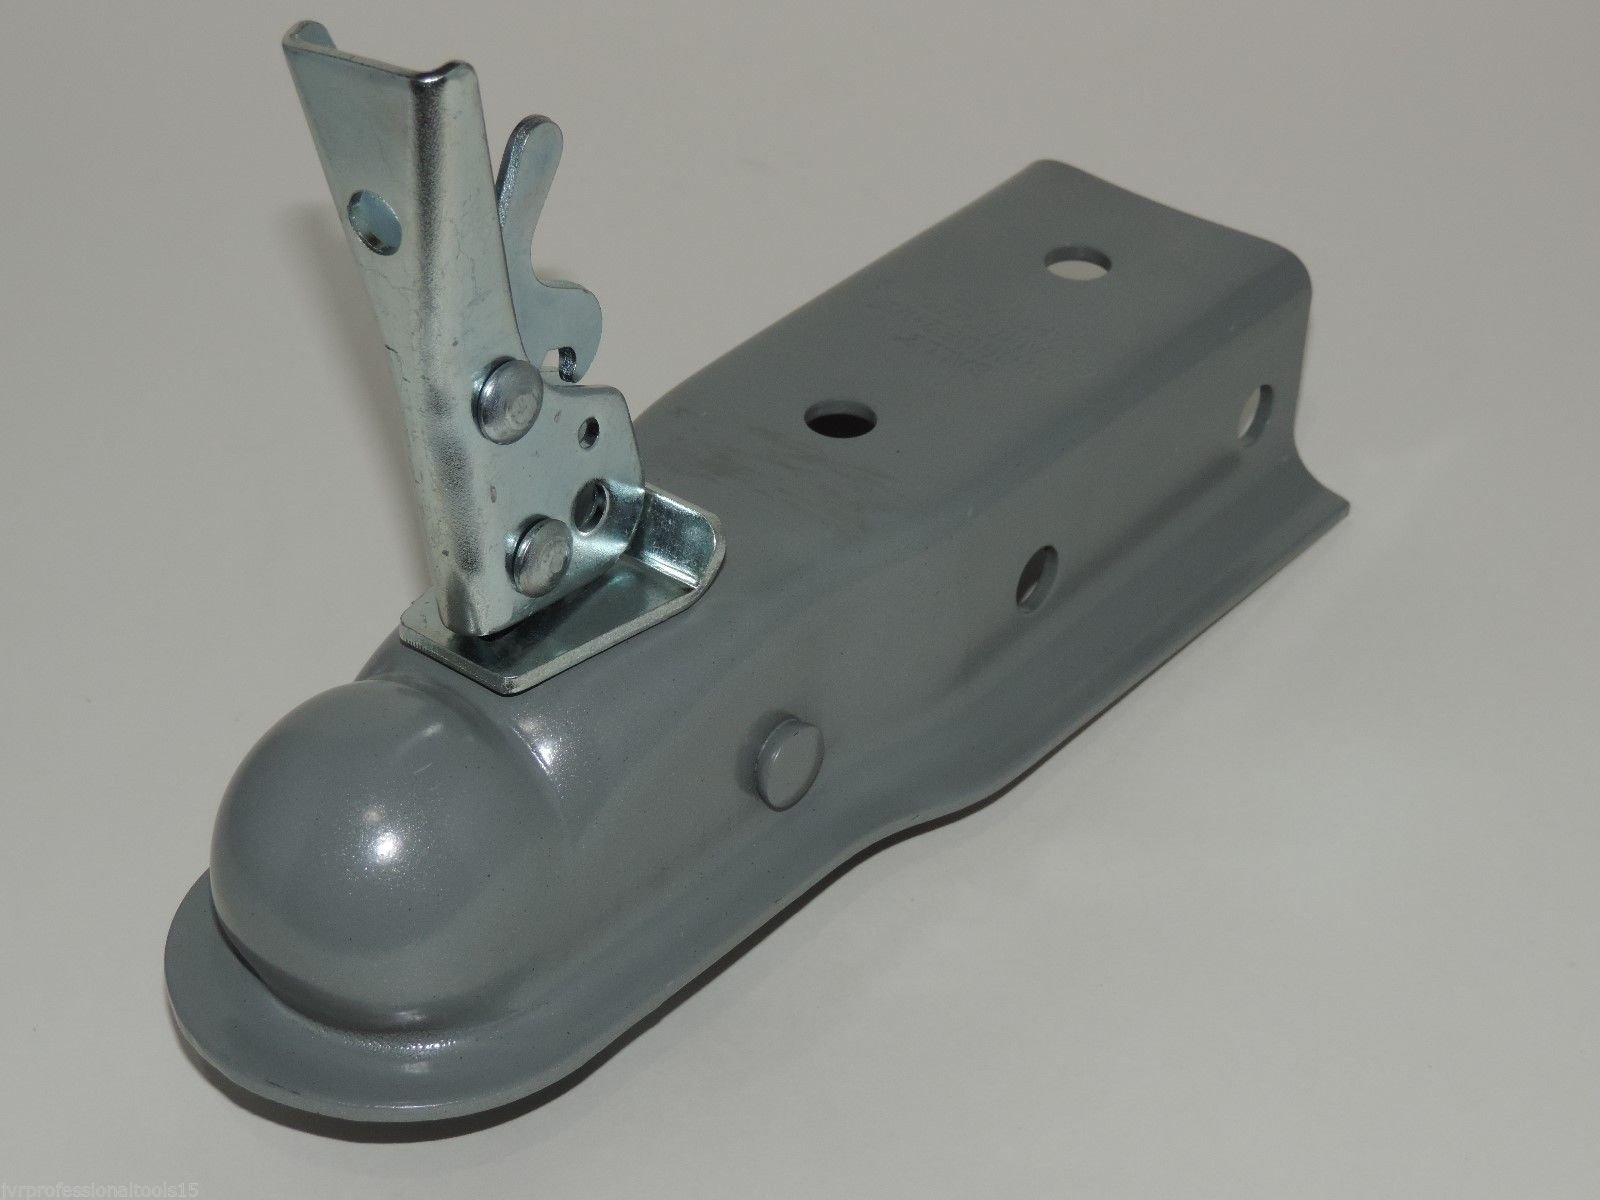 Simply Silver - Hitch Back Trailer - 2'' x 2'' Ball Hitch Back Trailer Coupler Tongue 2'' Class II 3,500 Ibs V5 & SAE